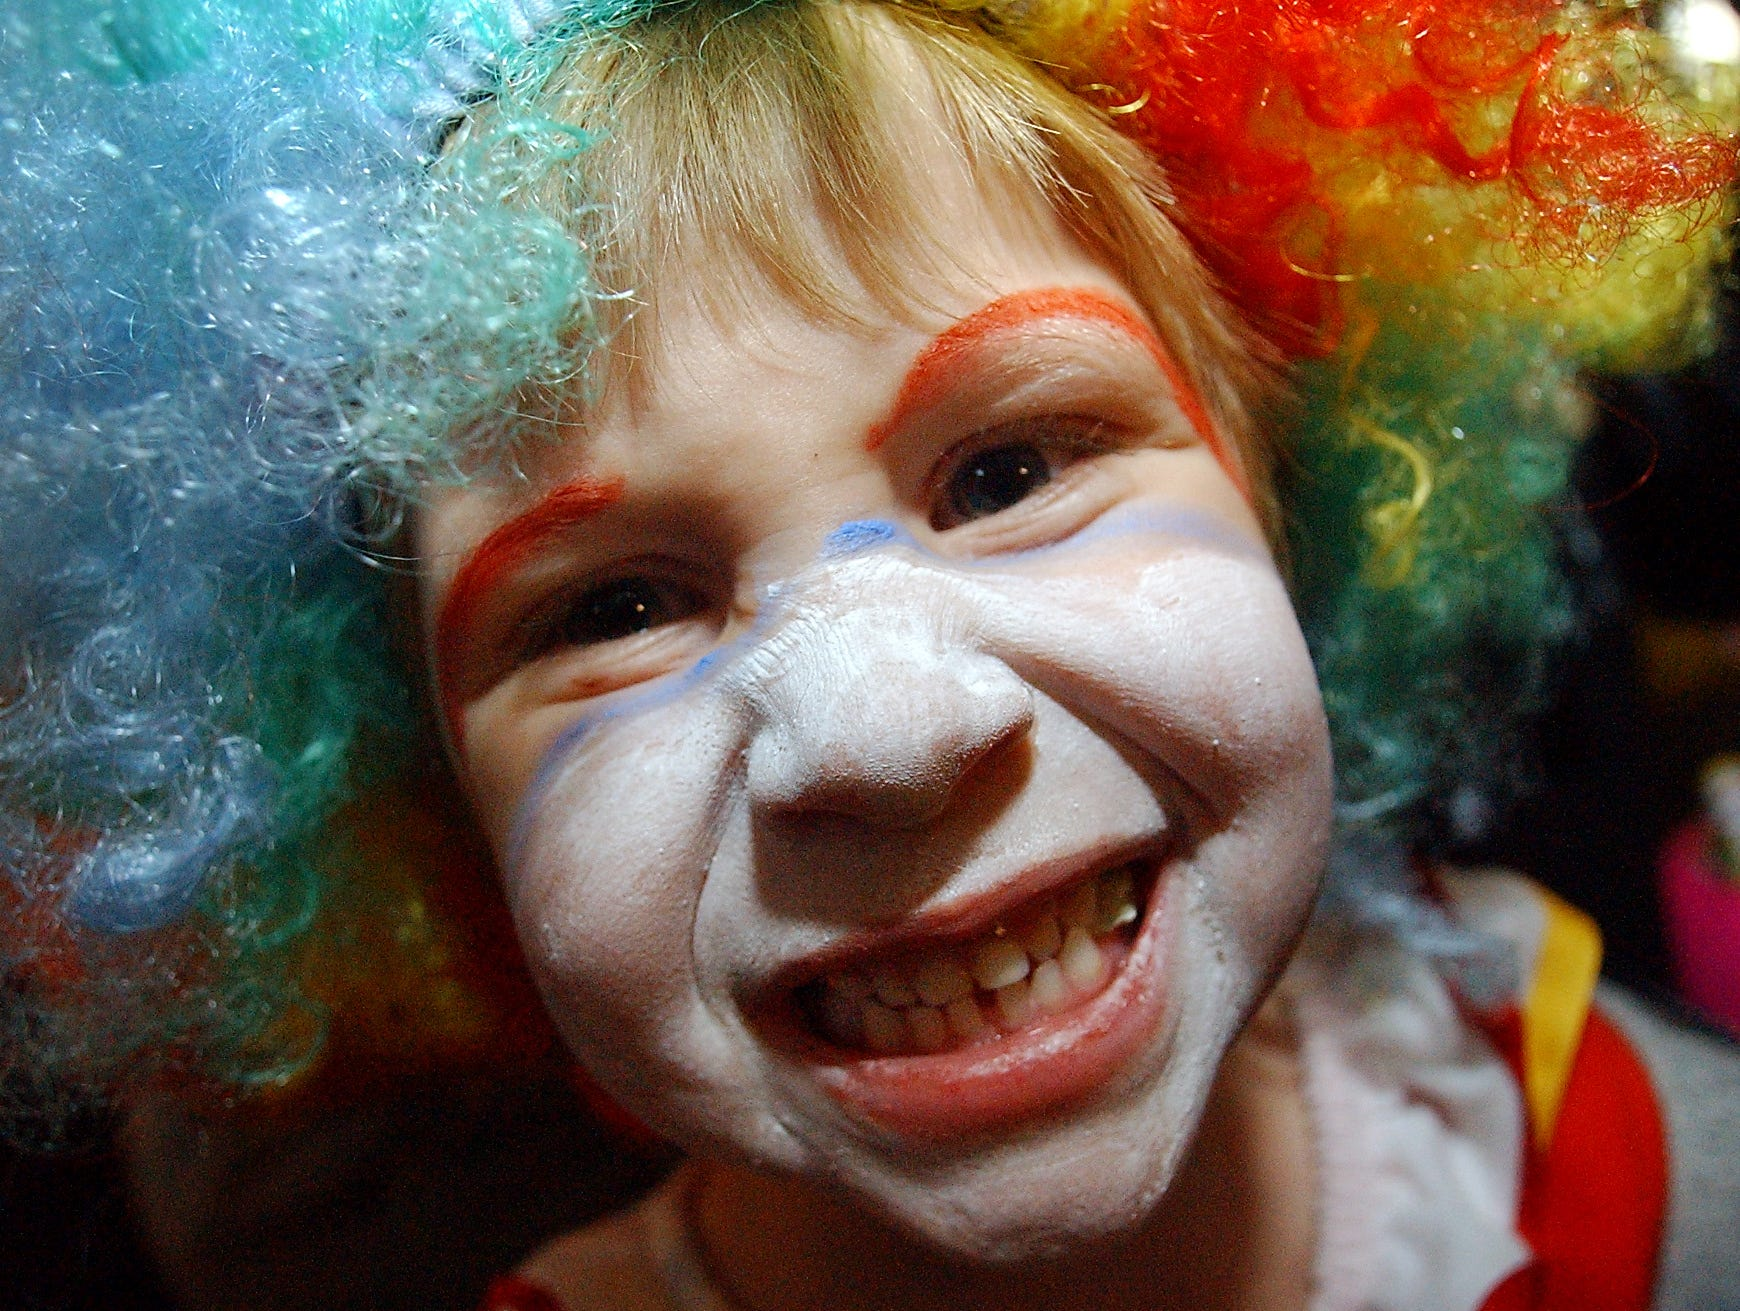 Nicole Ball, 4, of Newport, dressed as a clown for Halloween and took part in the Boo at the Zoo festivities at the Knoxville Zoo on Wednesday.